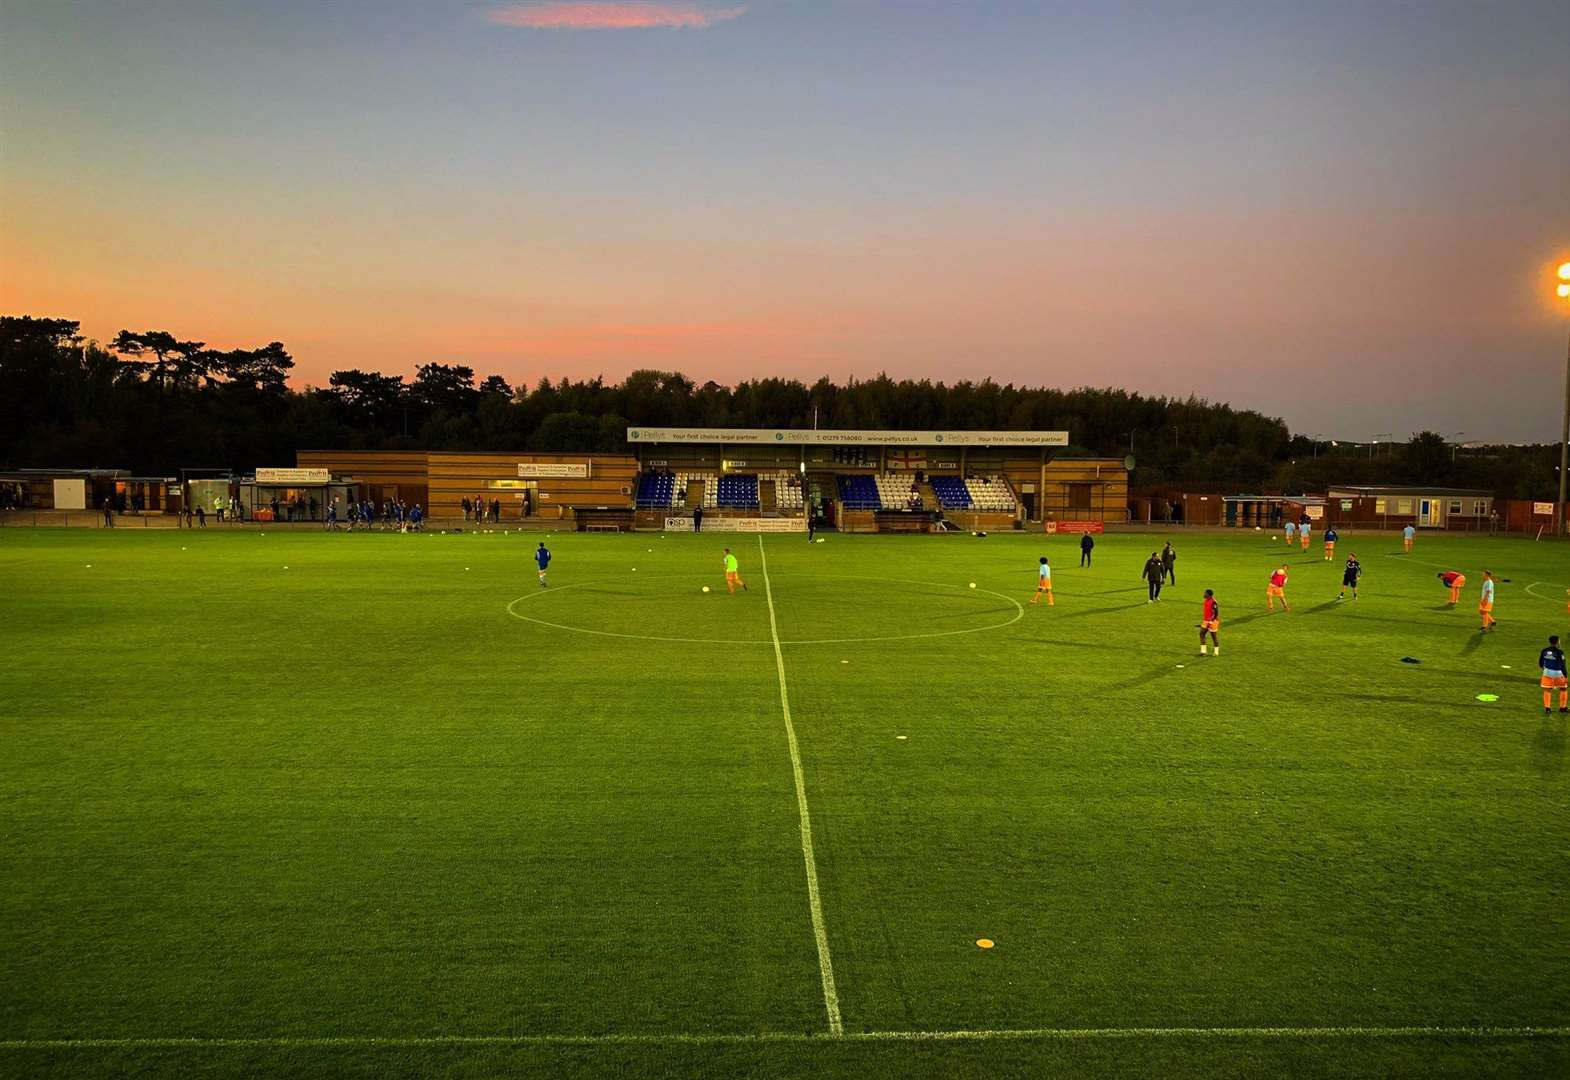 Police to probe Stortford football fan's alleged racist abuse of player